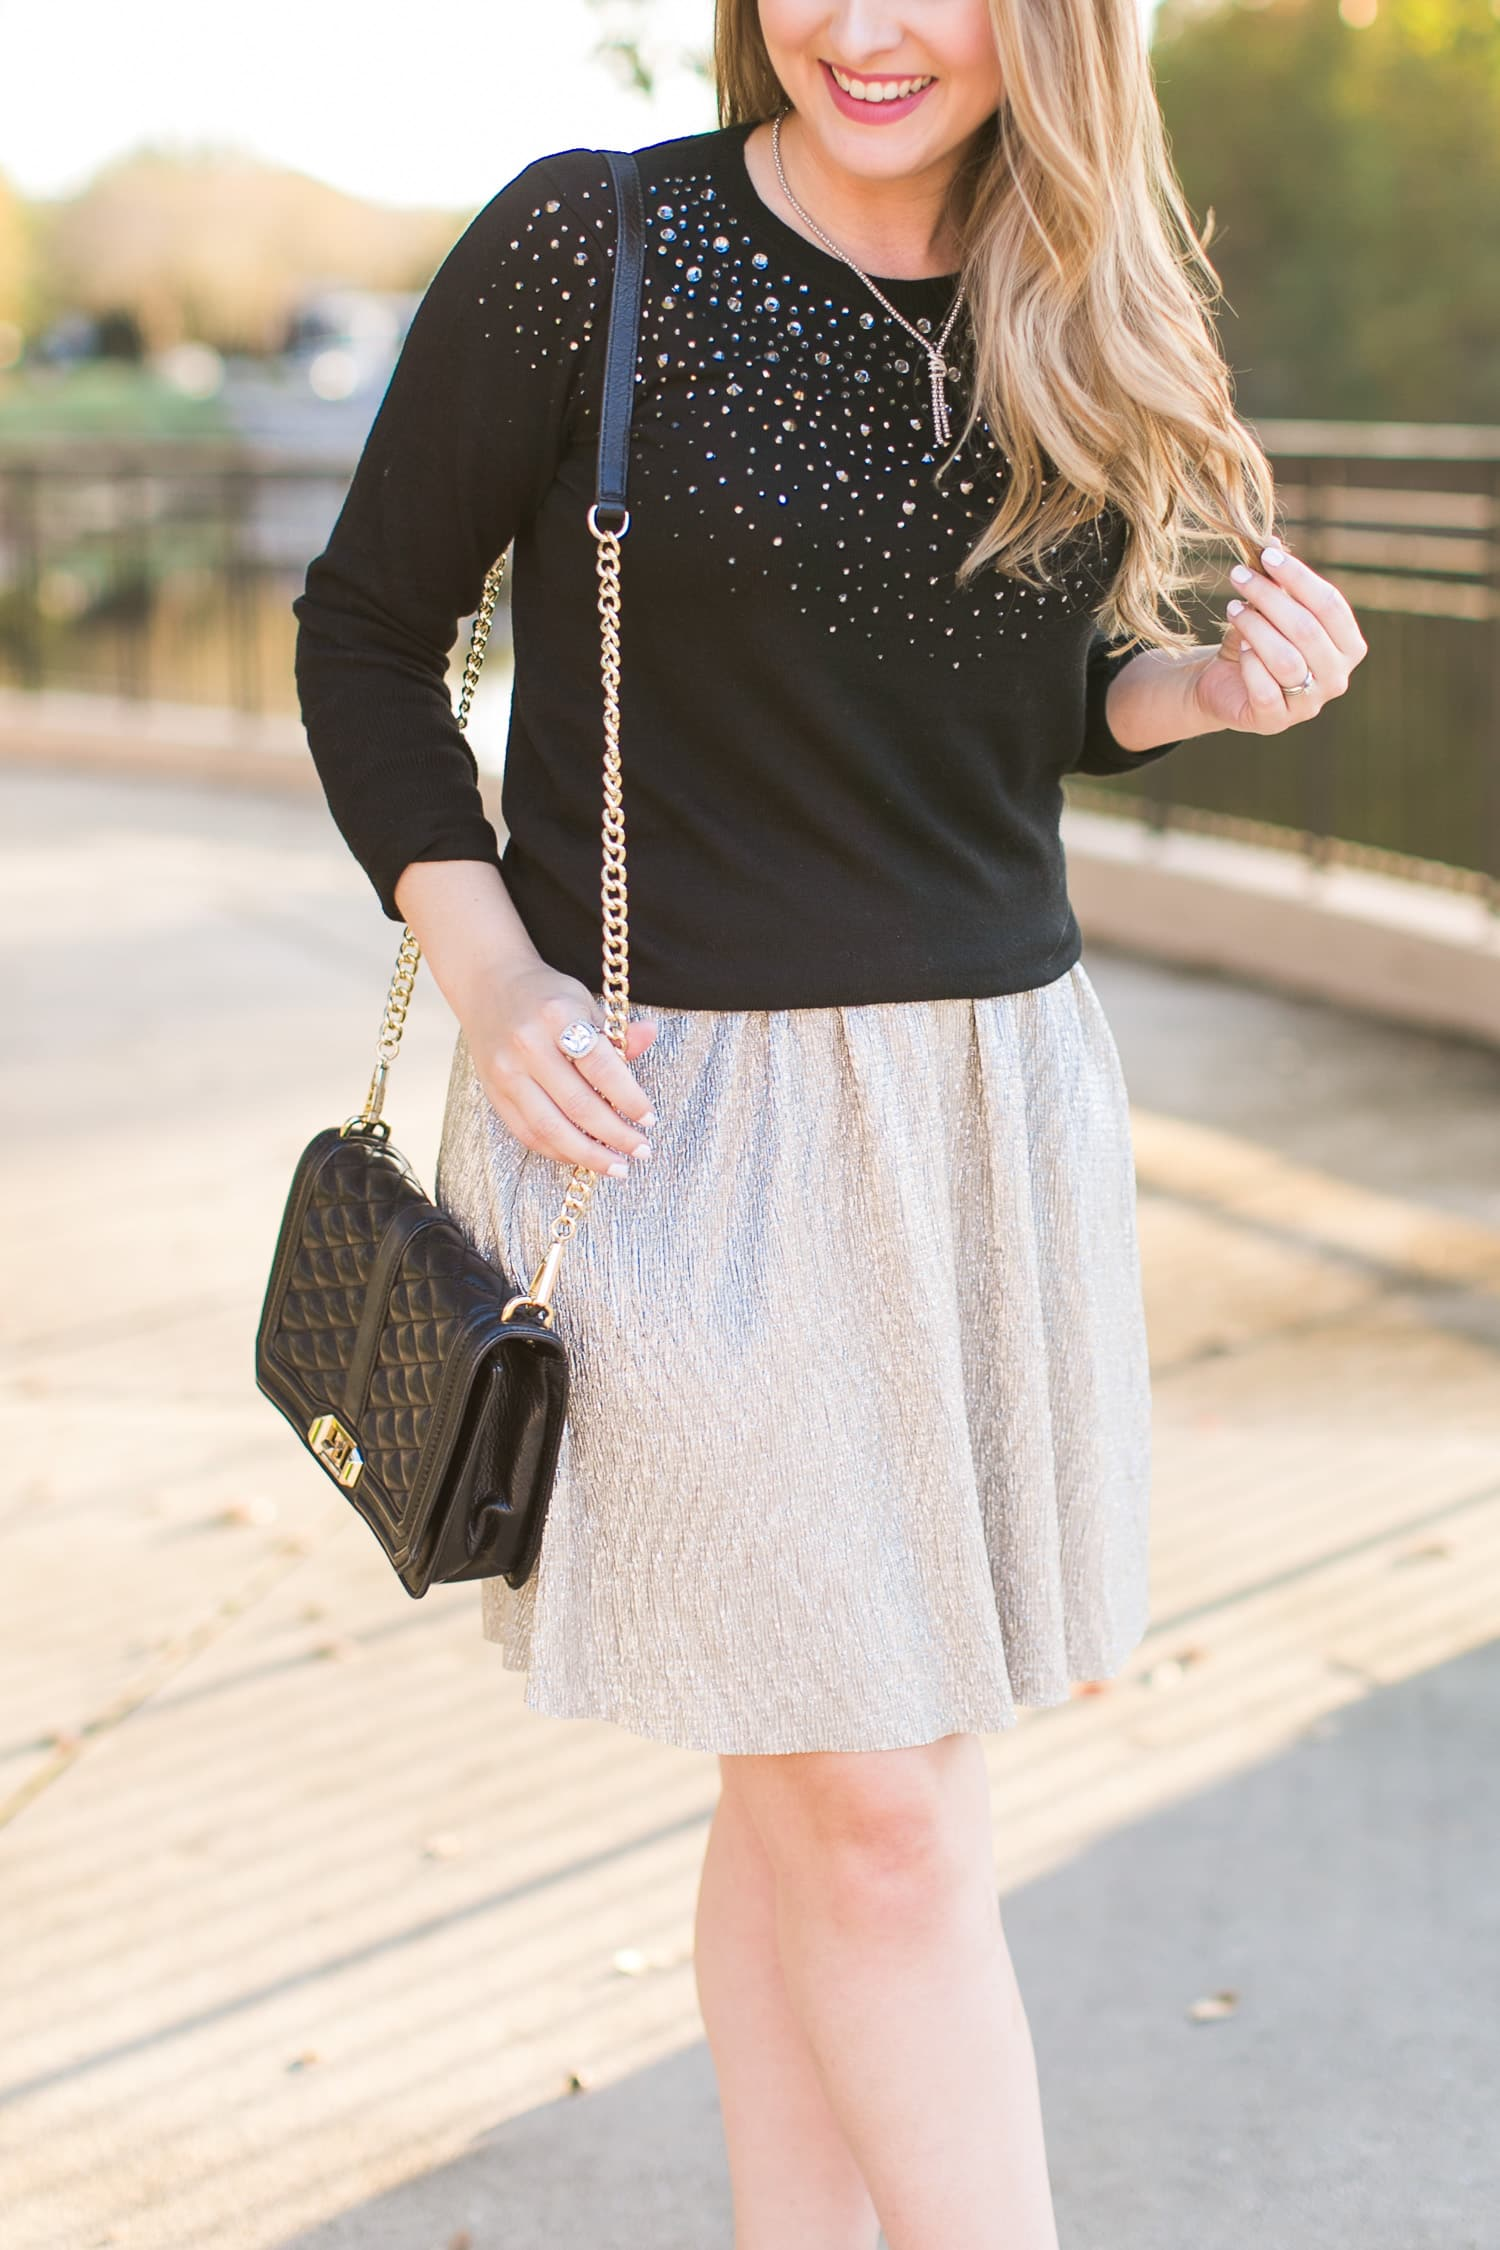 3 Easy Ways To Style A Sweater And Skirt Ashley Brooke